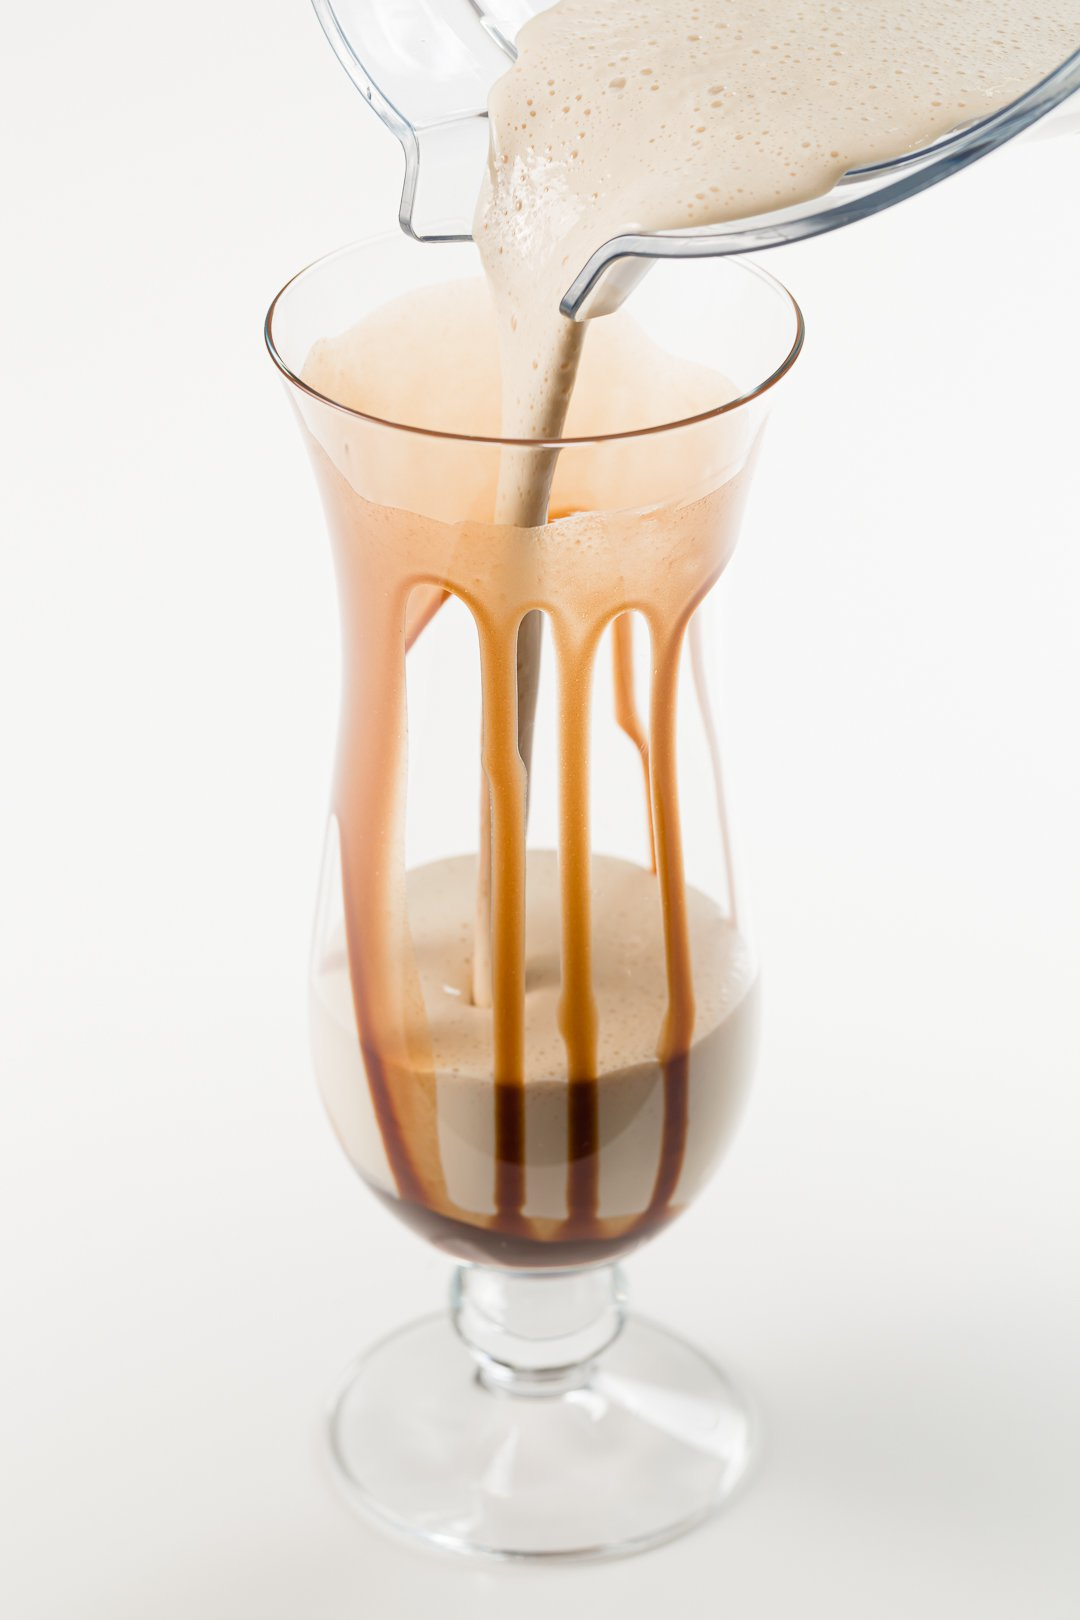 pouring from a pitcher of frozen mudslide cocktails into a glass drizzled with chocolate sauce